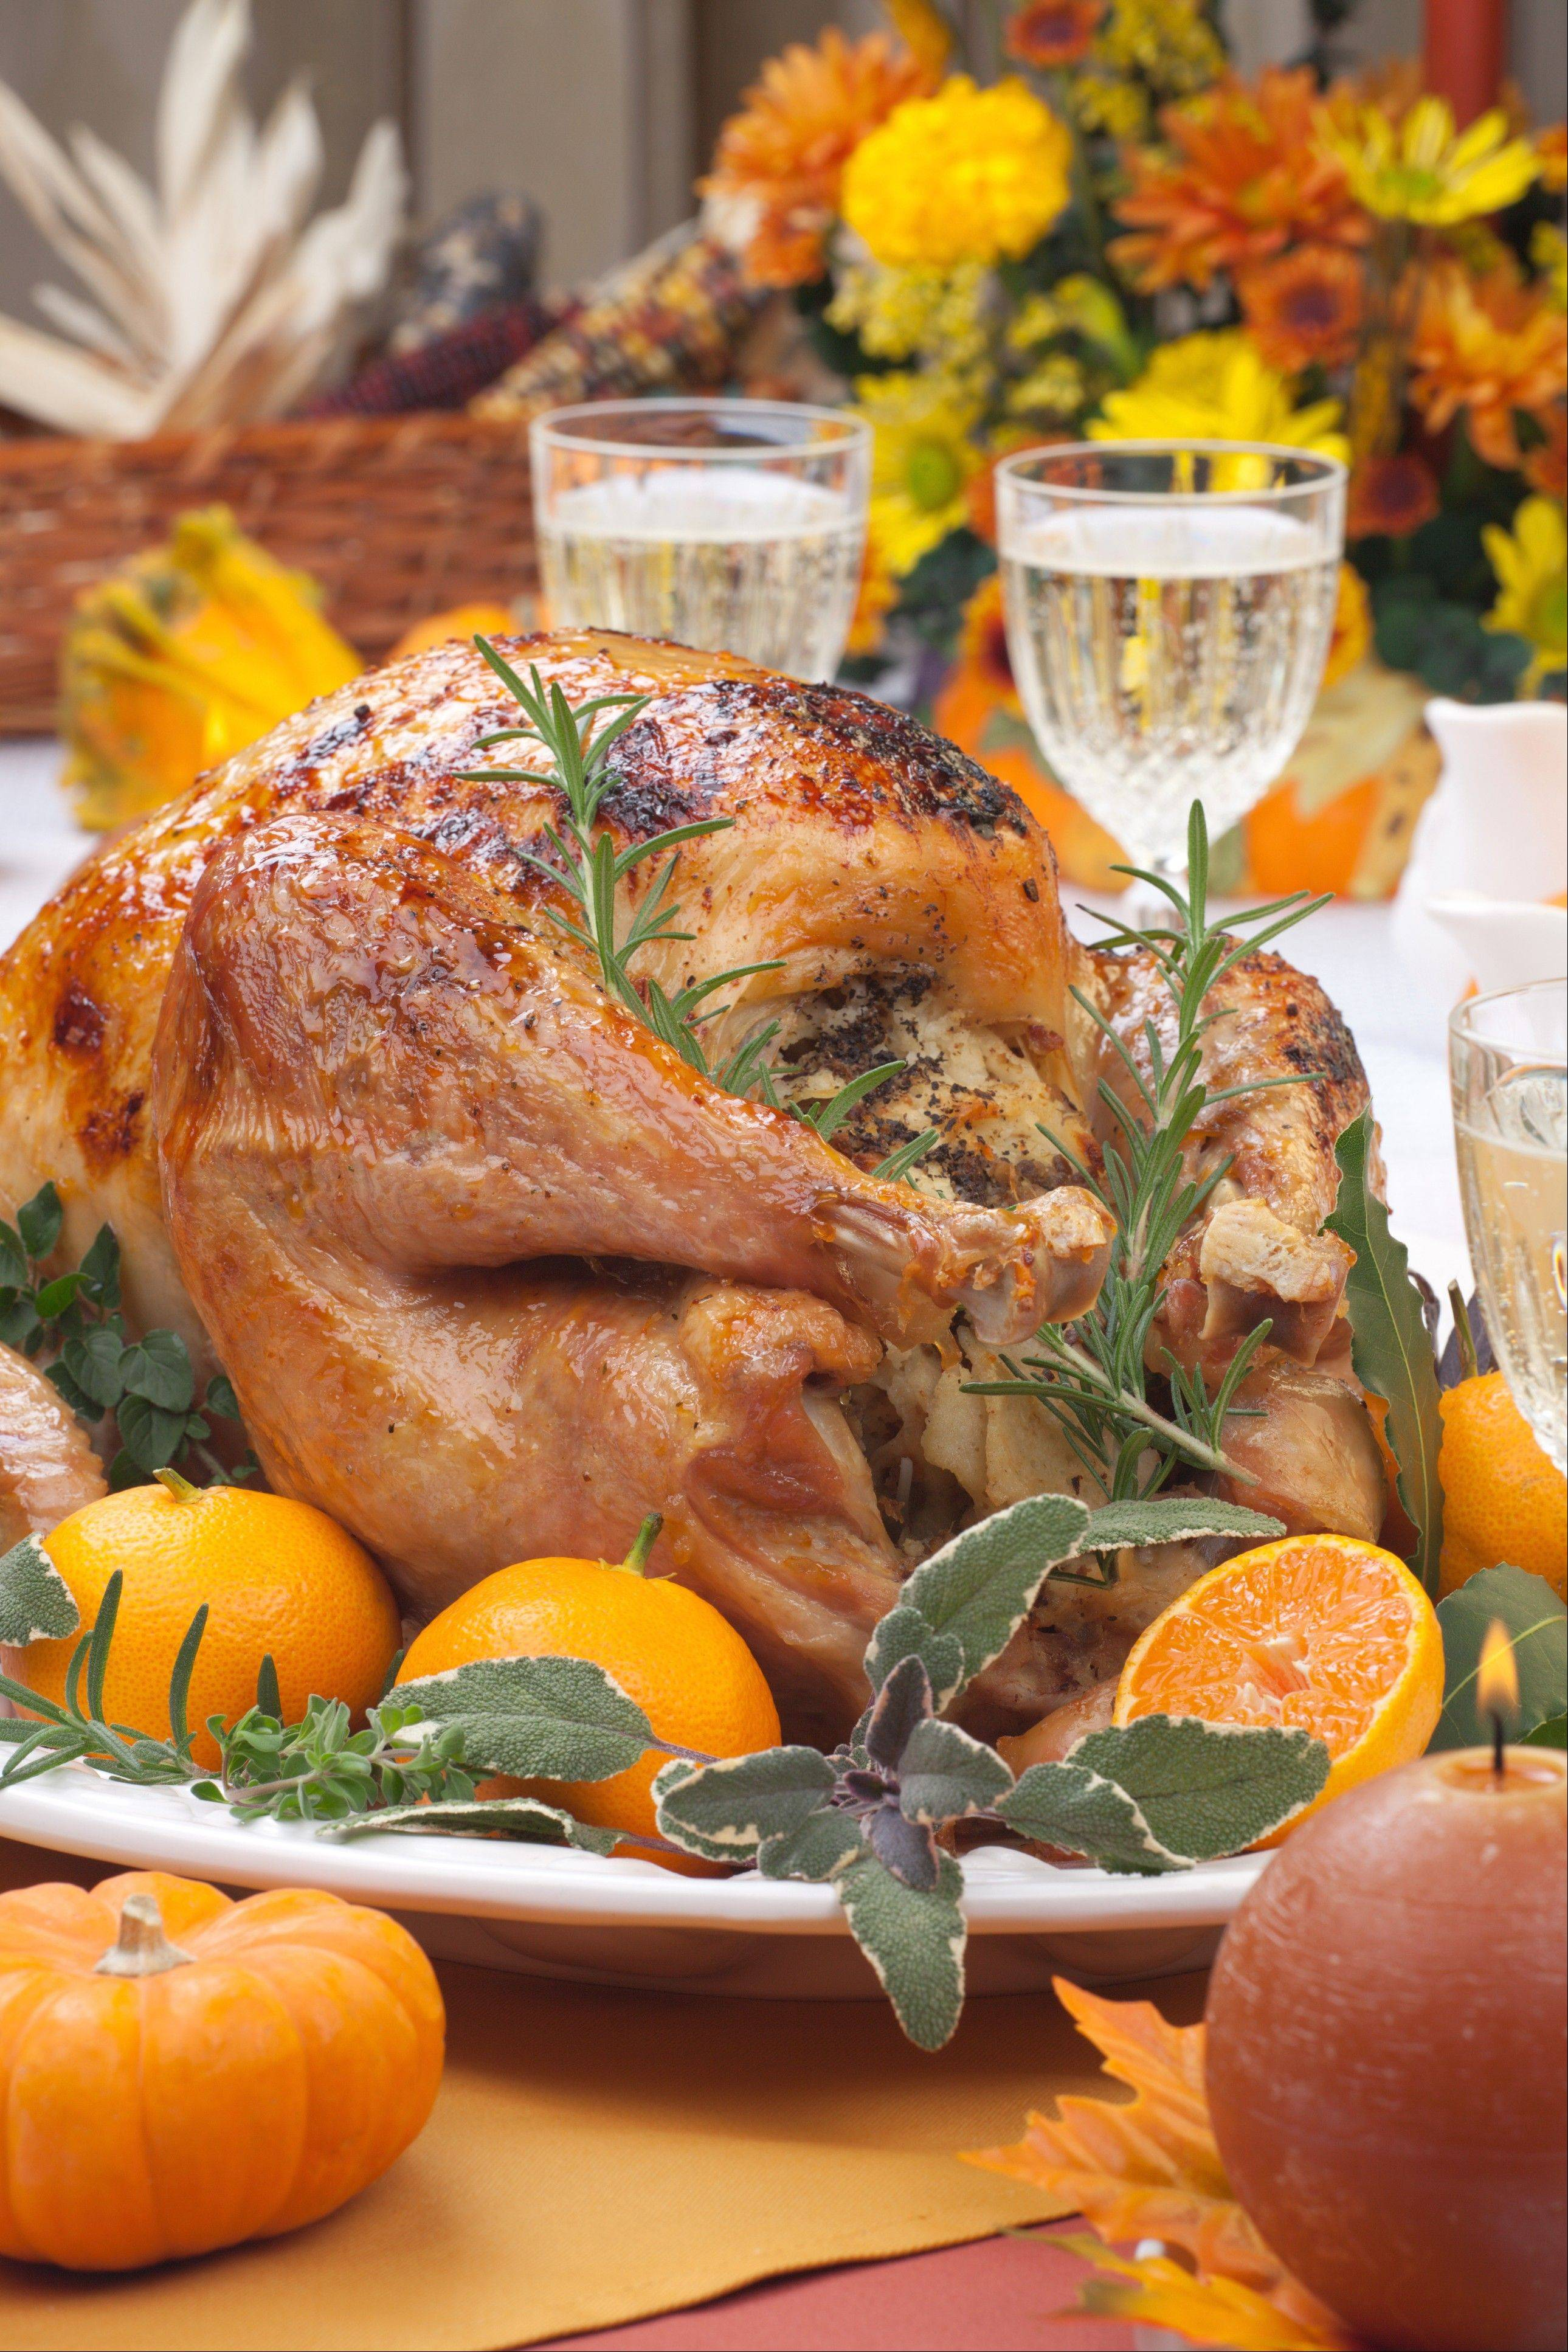 Sparkling wines and Rieslings are safe choices to pair with the Thanksgiving feast.